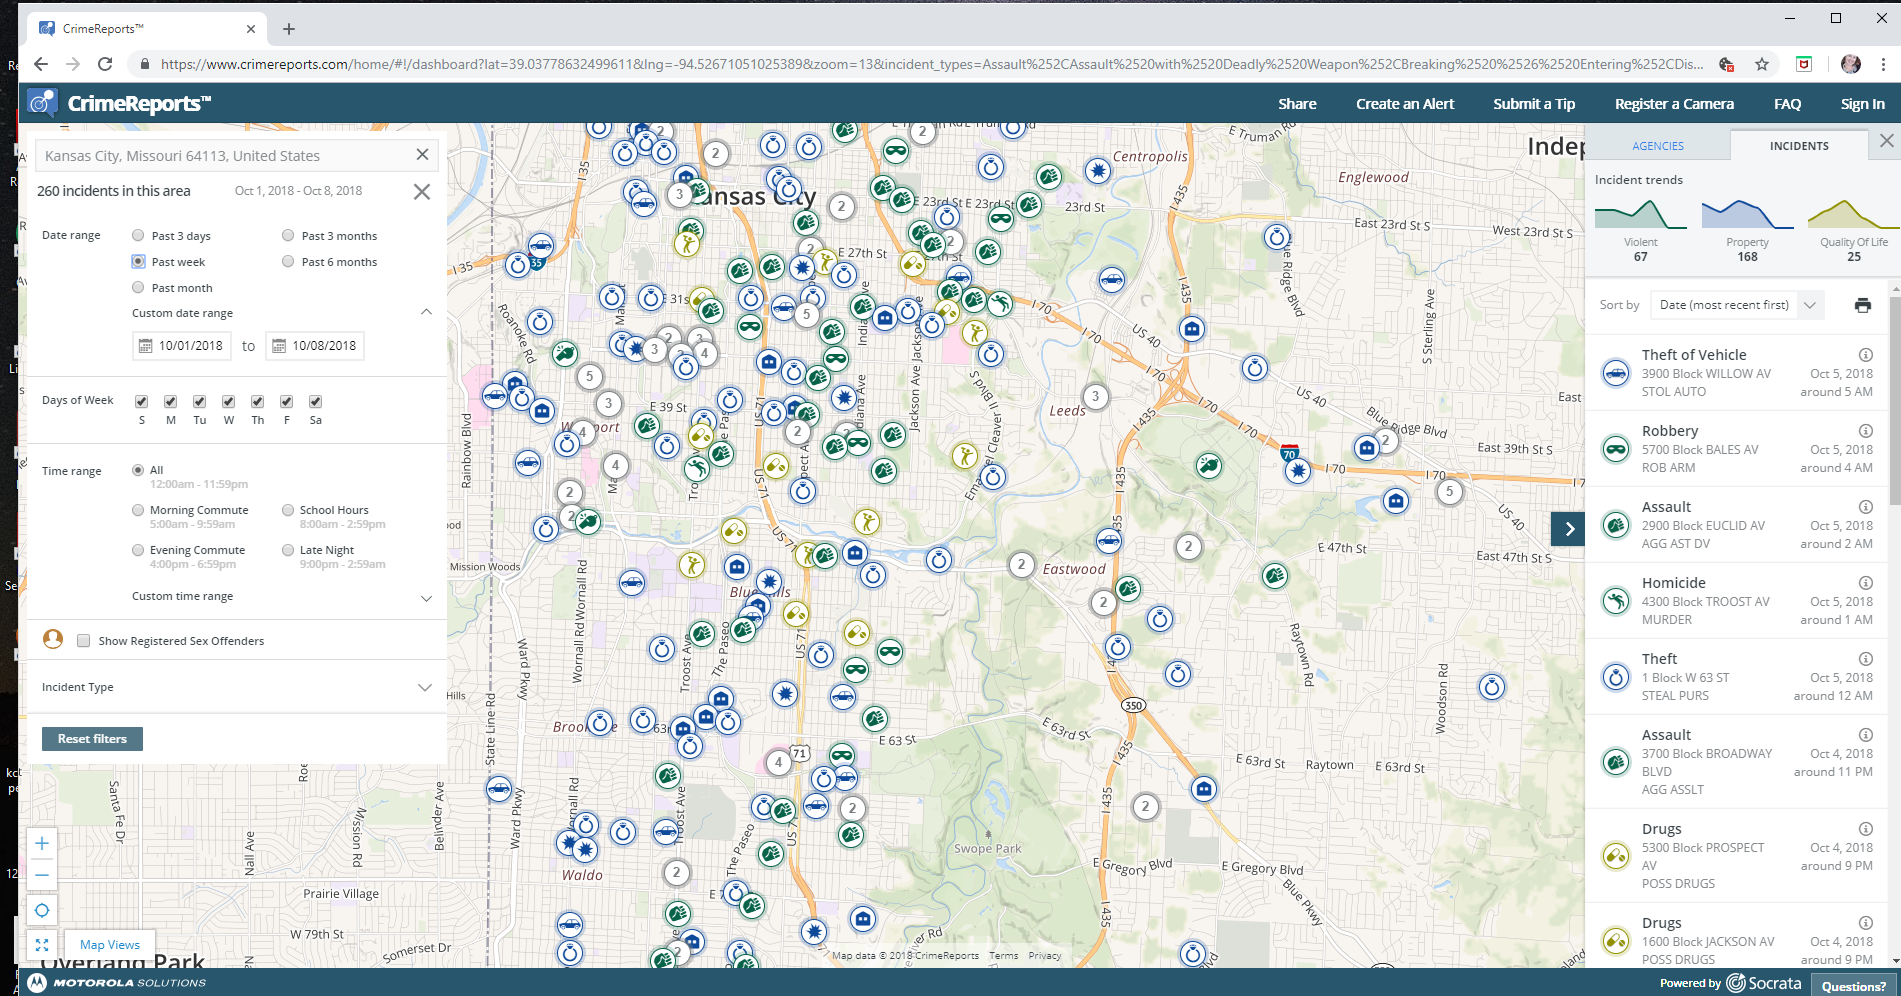 Past week of crime in part of Brookside, Waldo, and Plaza areas of KC. LOTS of incidents!